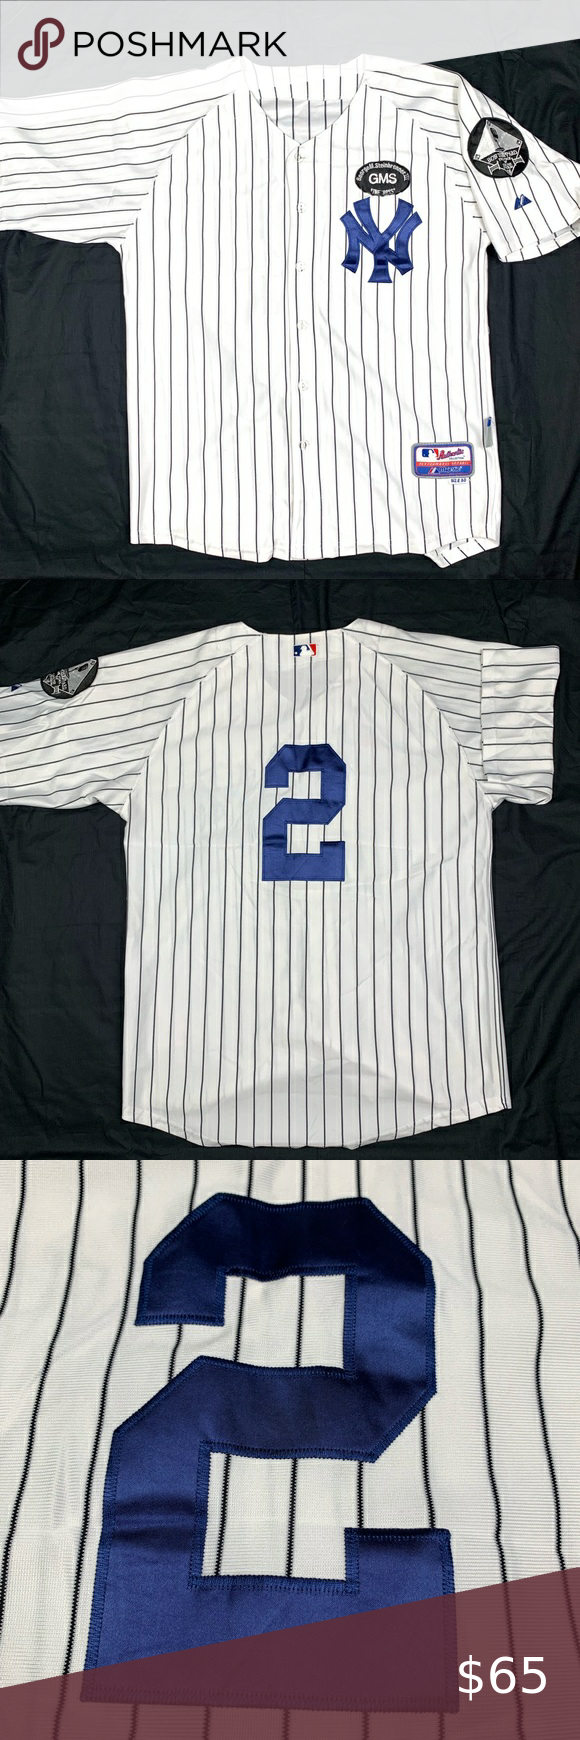 Vgt Ny Yankees Derek Jeter Special Edition Jersey In 2020 Derek Jeter Ny Yankees Colorful Shirts